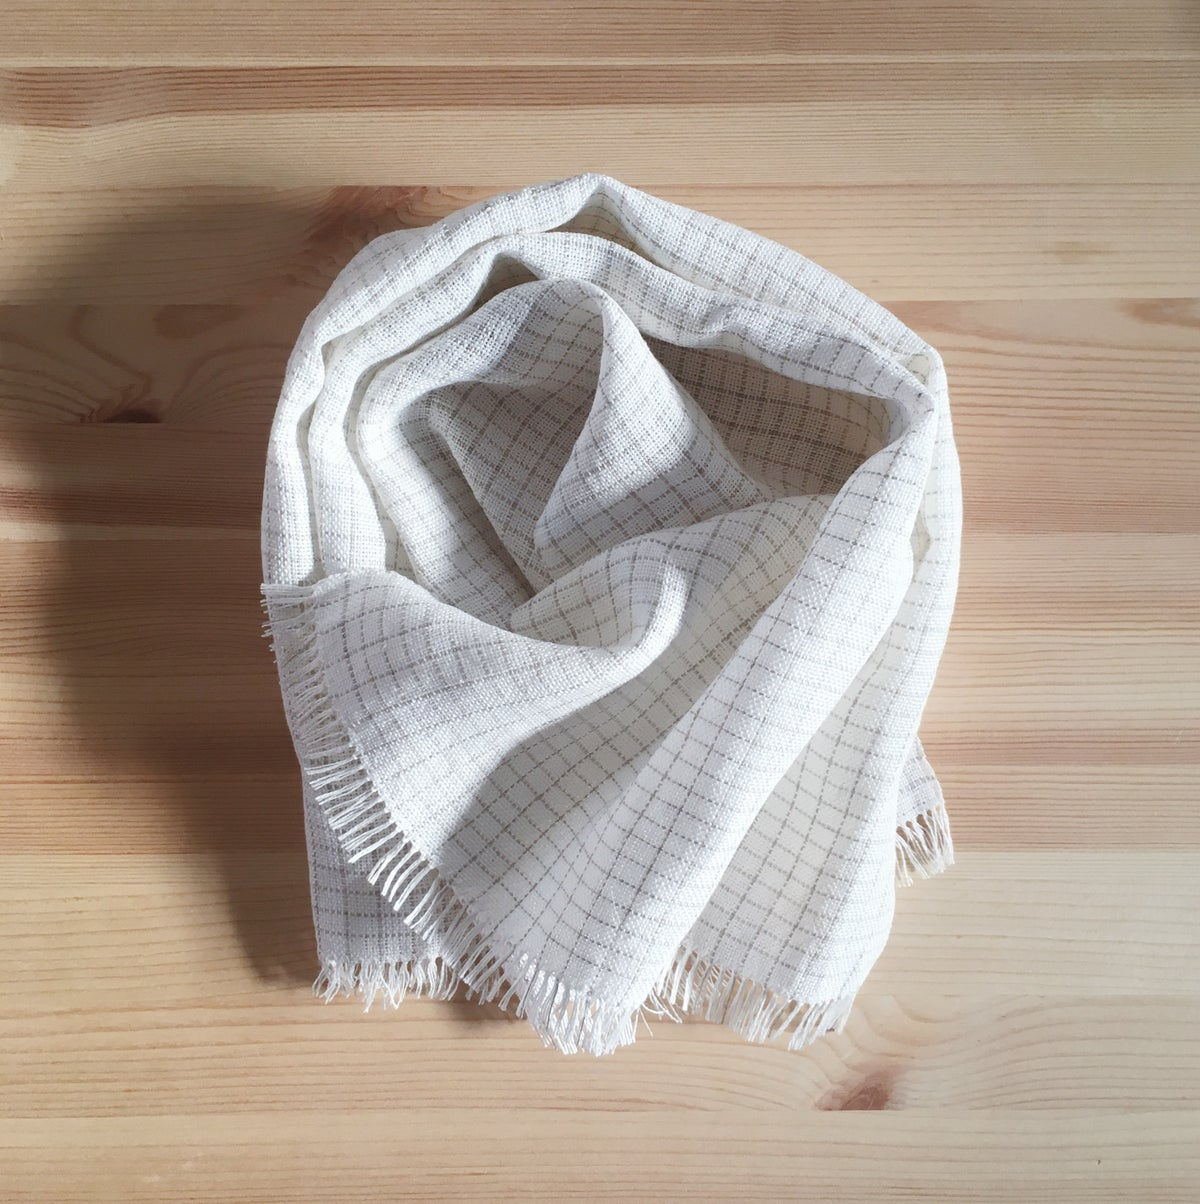 Image of White Kitchen Towel, Rectangle Grid